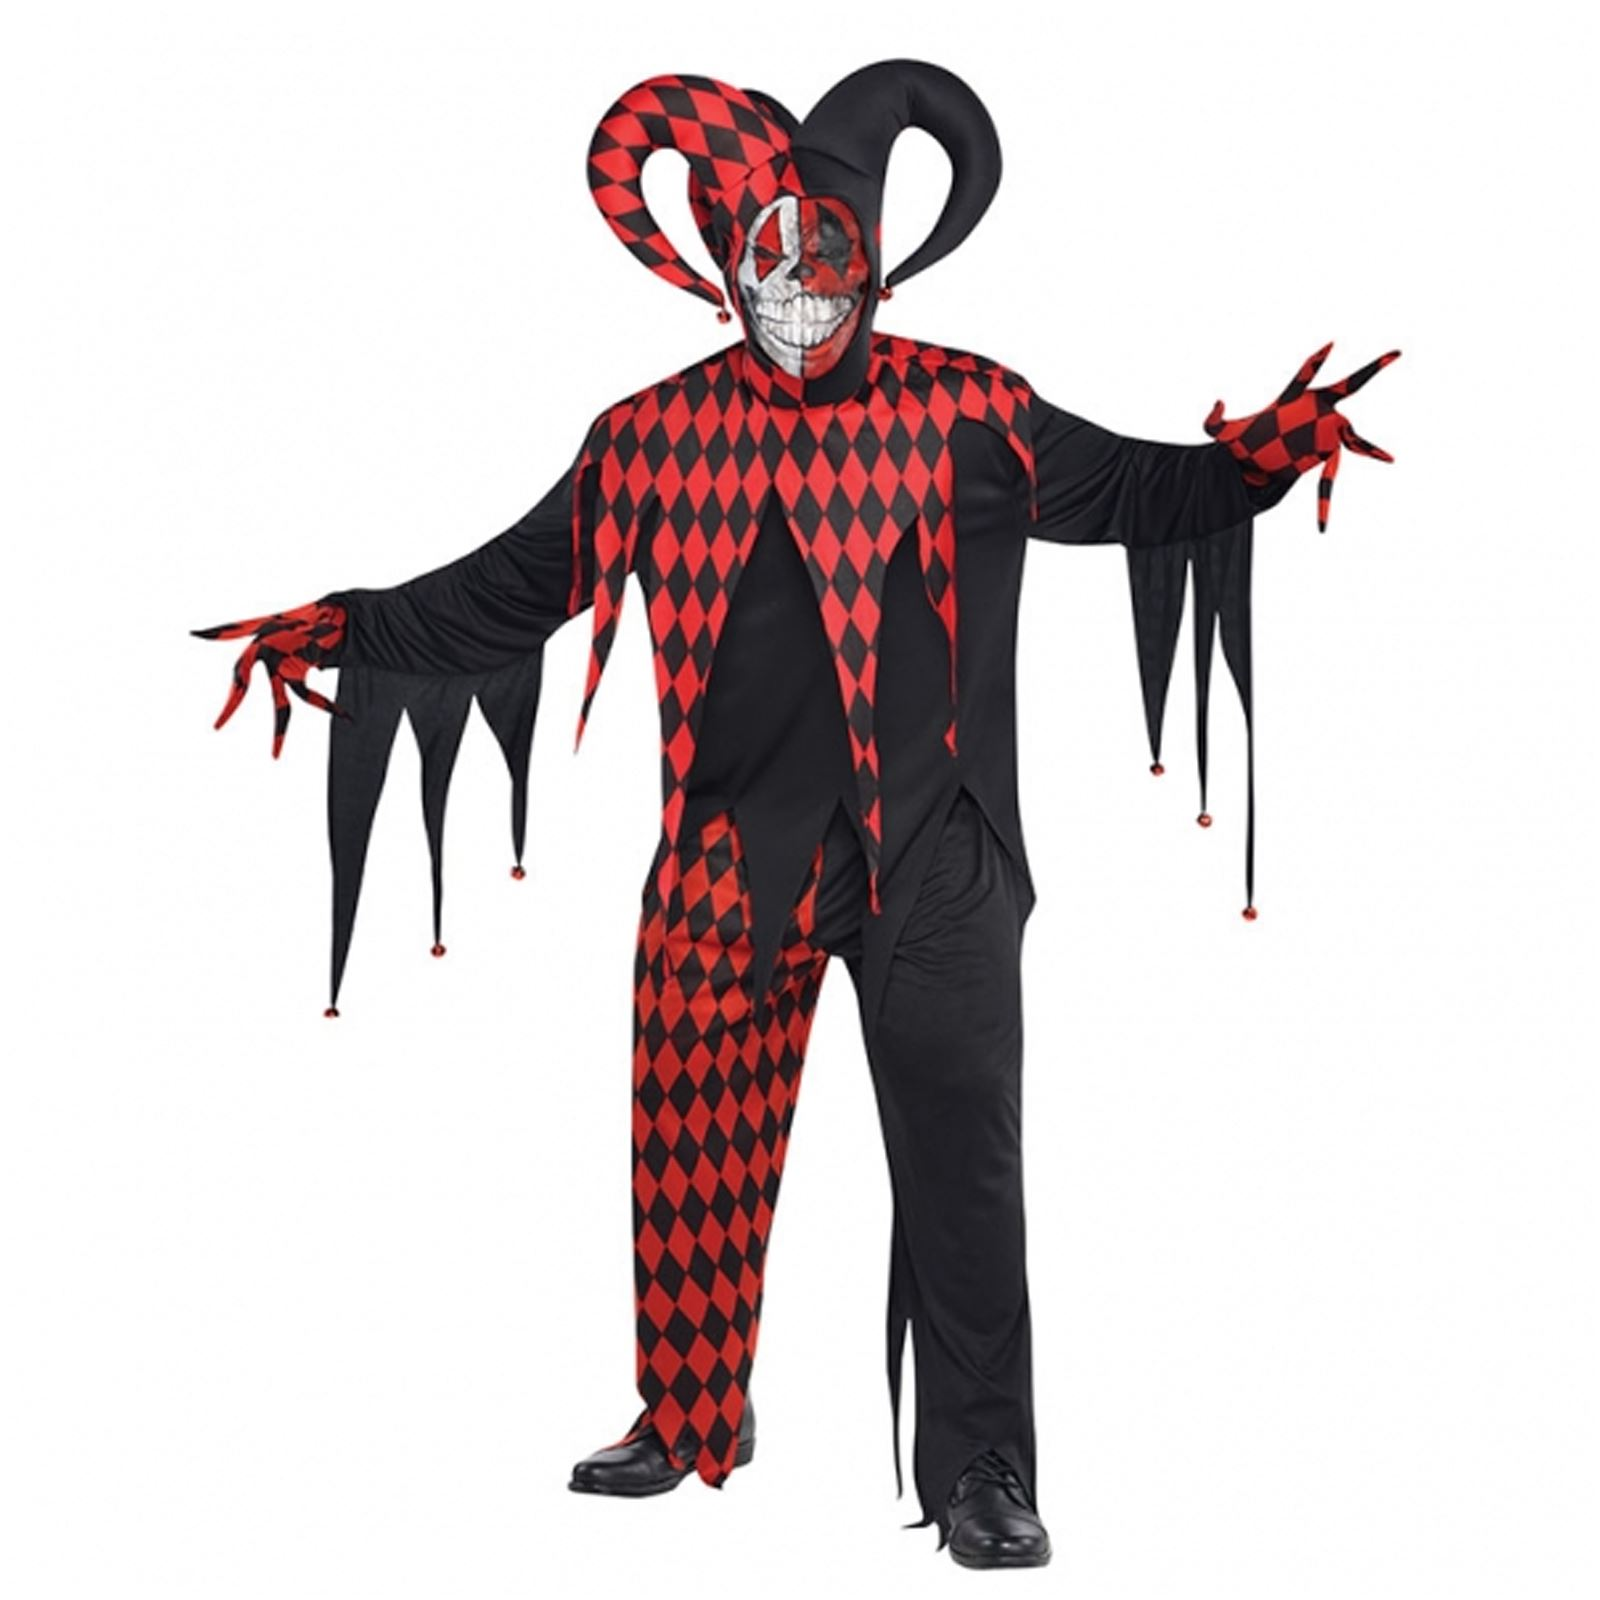 Krazed Jester Evil Clown Fancy Dress Halloween Costume Mens Adults ...